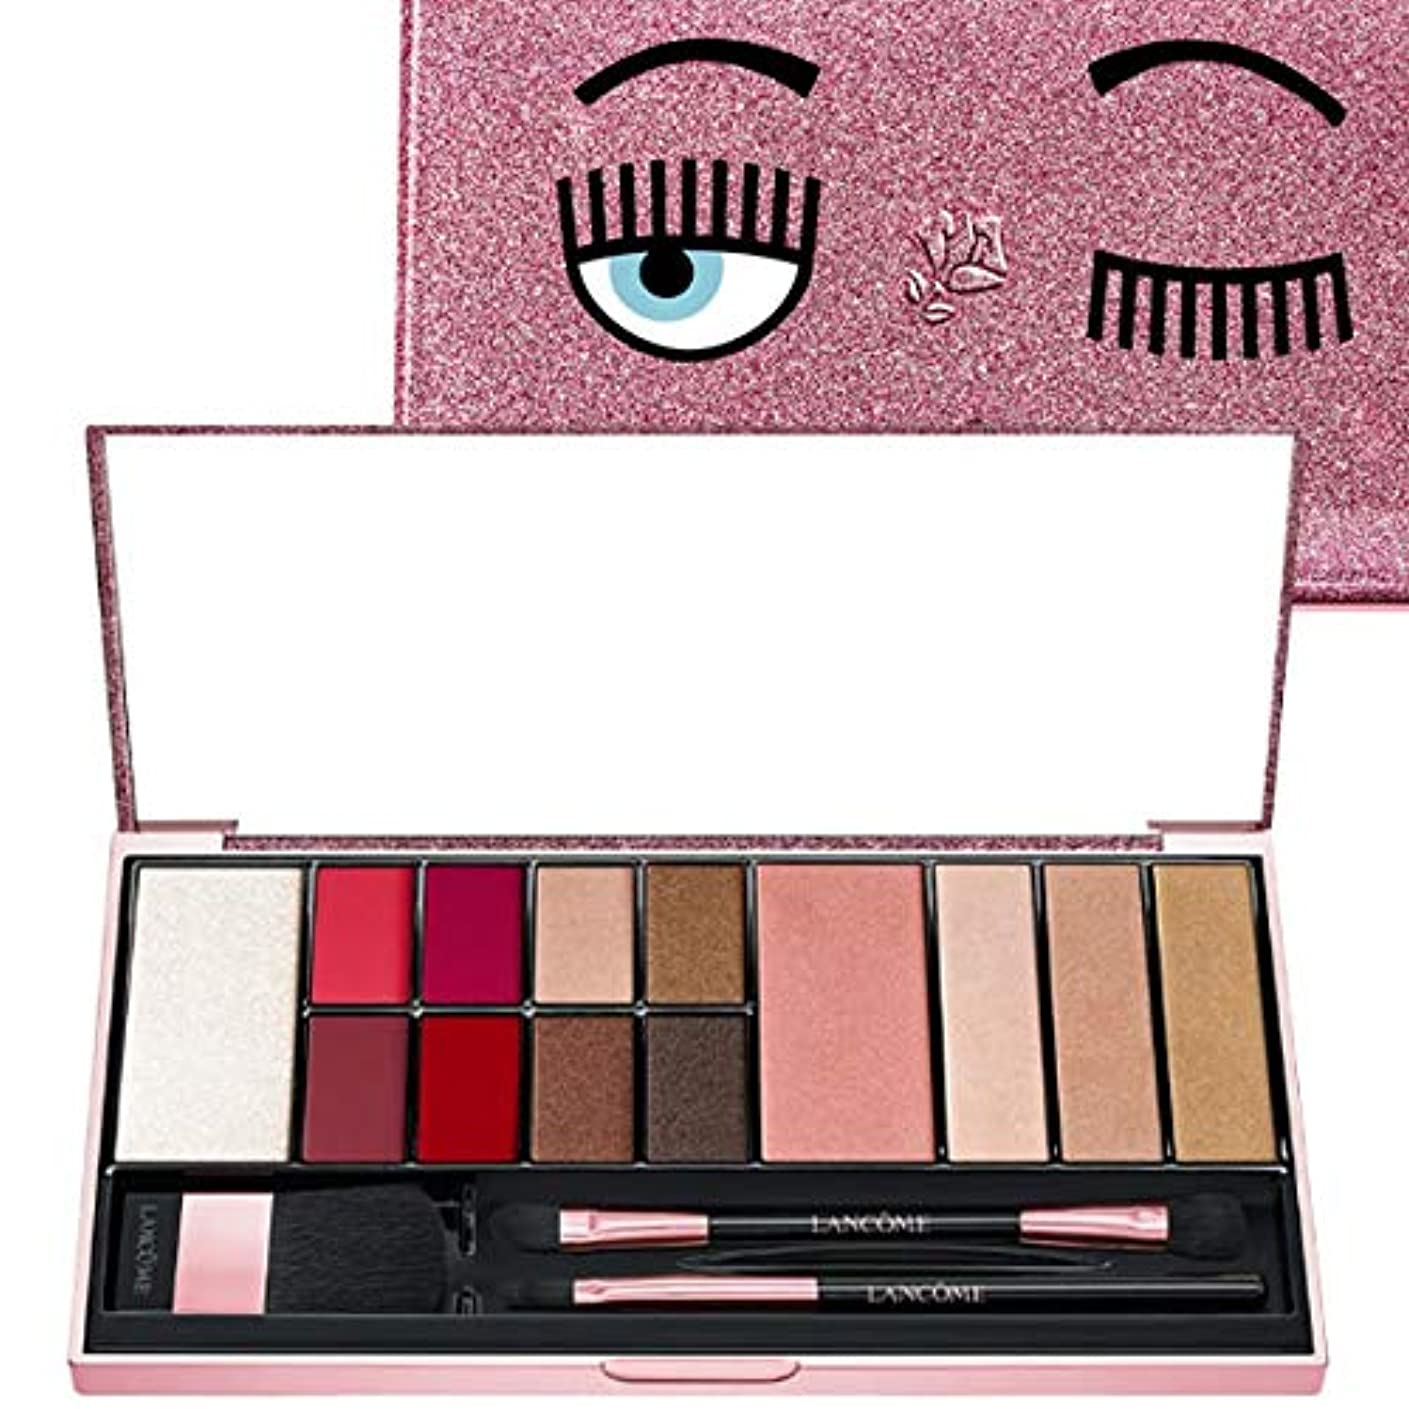 地図呪い感覚ランコム(LANCOME), 限定版 limited-edition, x Chiara Ferragni The Flirting Eyeshadow Palette [海外直送品] [並行輸入品]